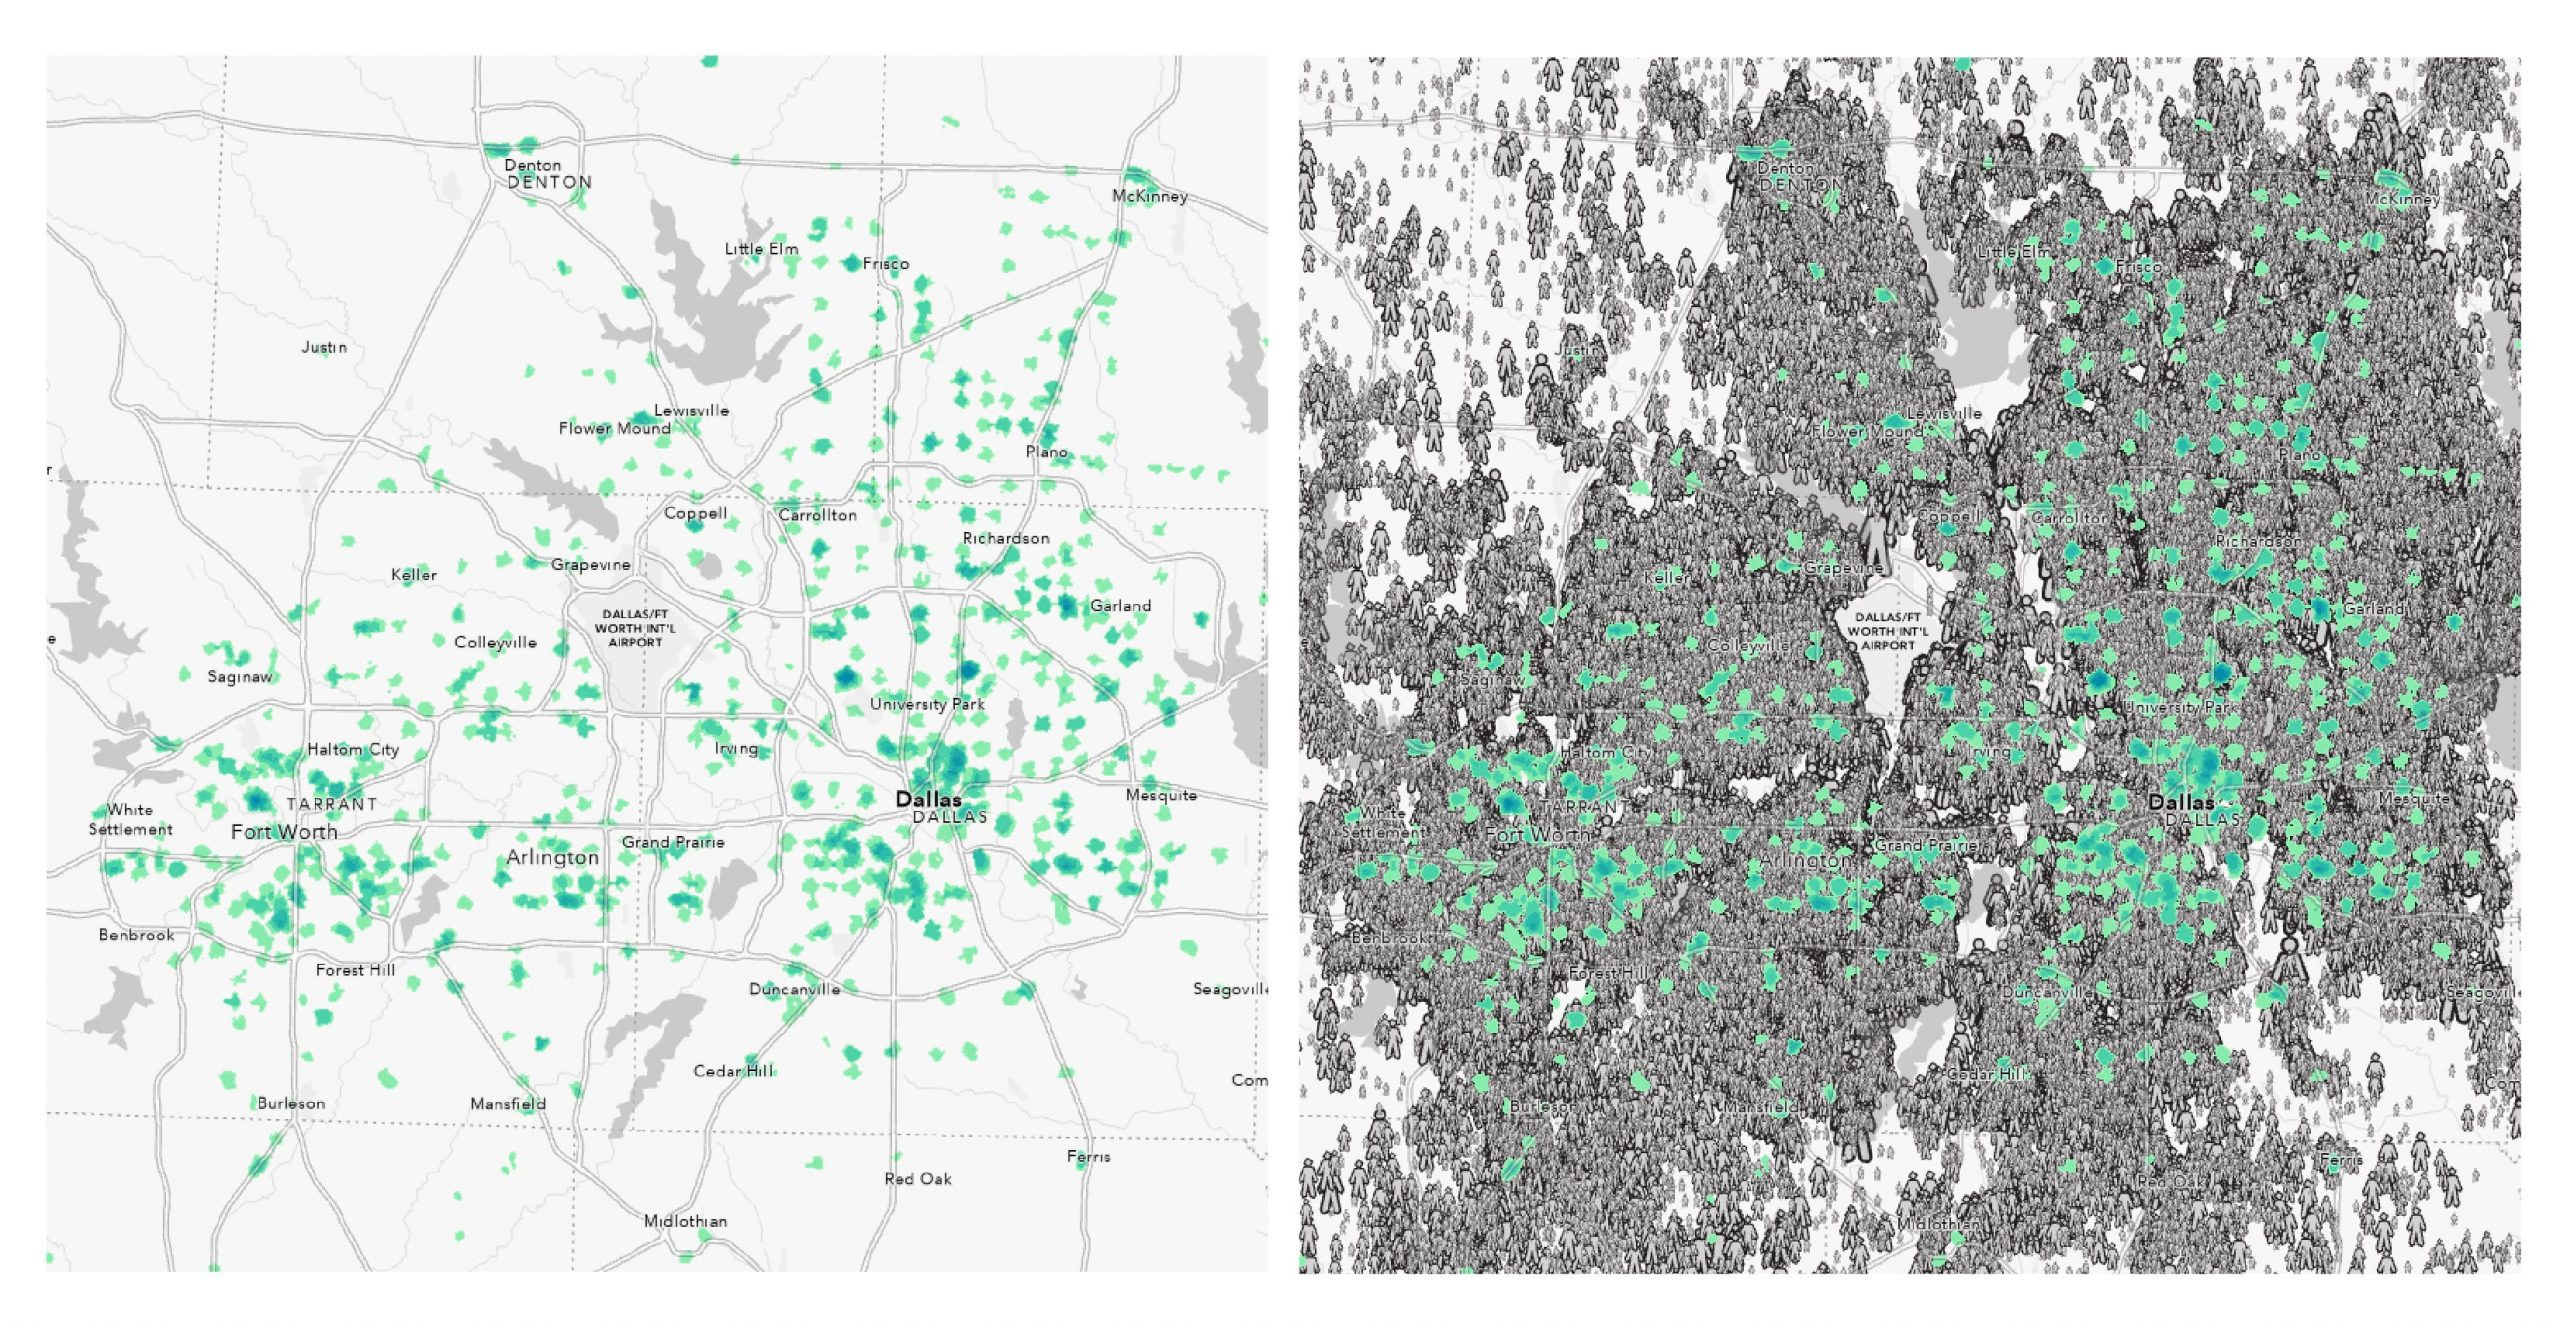 Dallas/Fort Worth showing few walking options to an area with massive population.